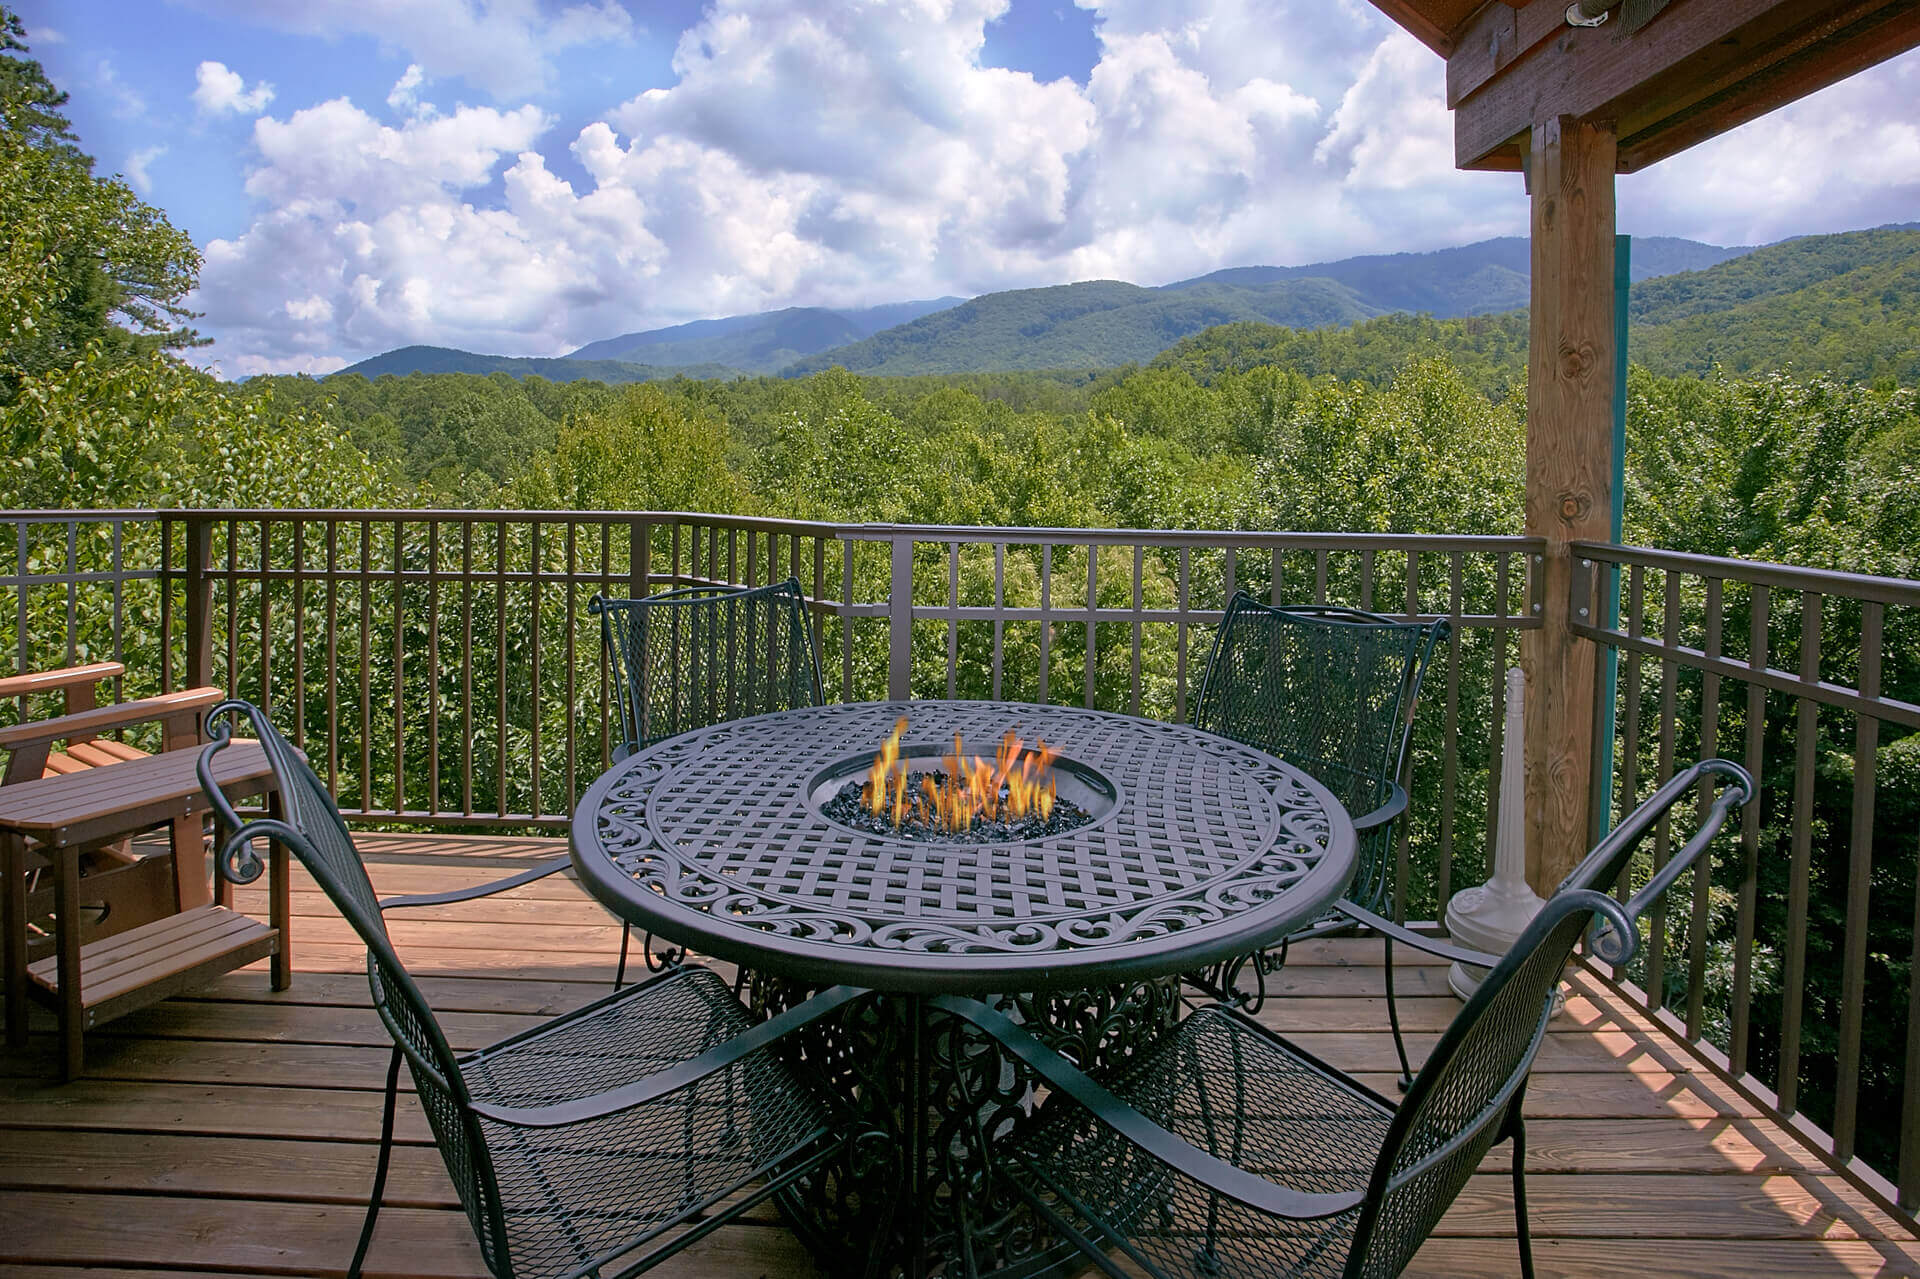 blog trails photo gatlinburg bridge rentals laurel cabins cabin top the in smoky with hiking near falls favorite mountains our beautiful tn of